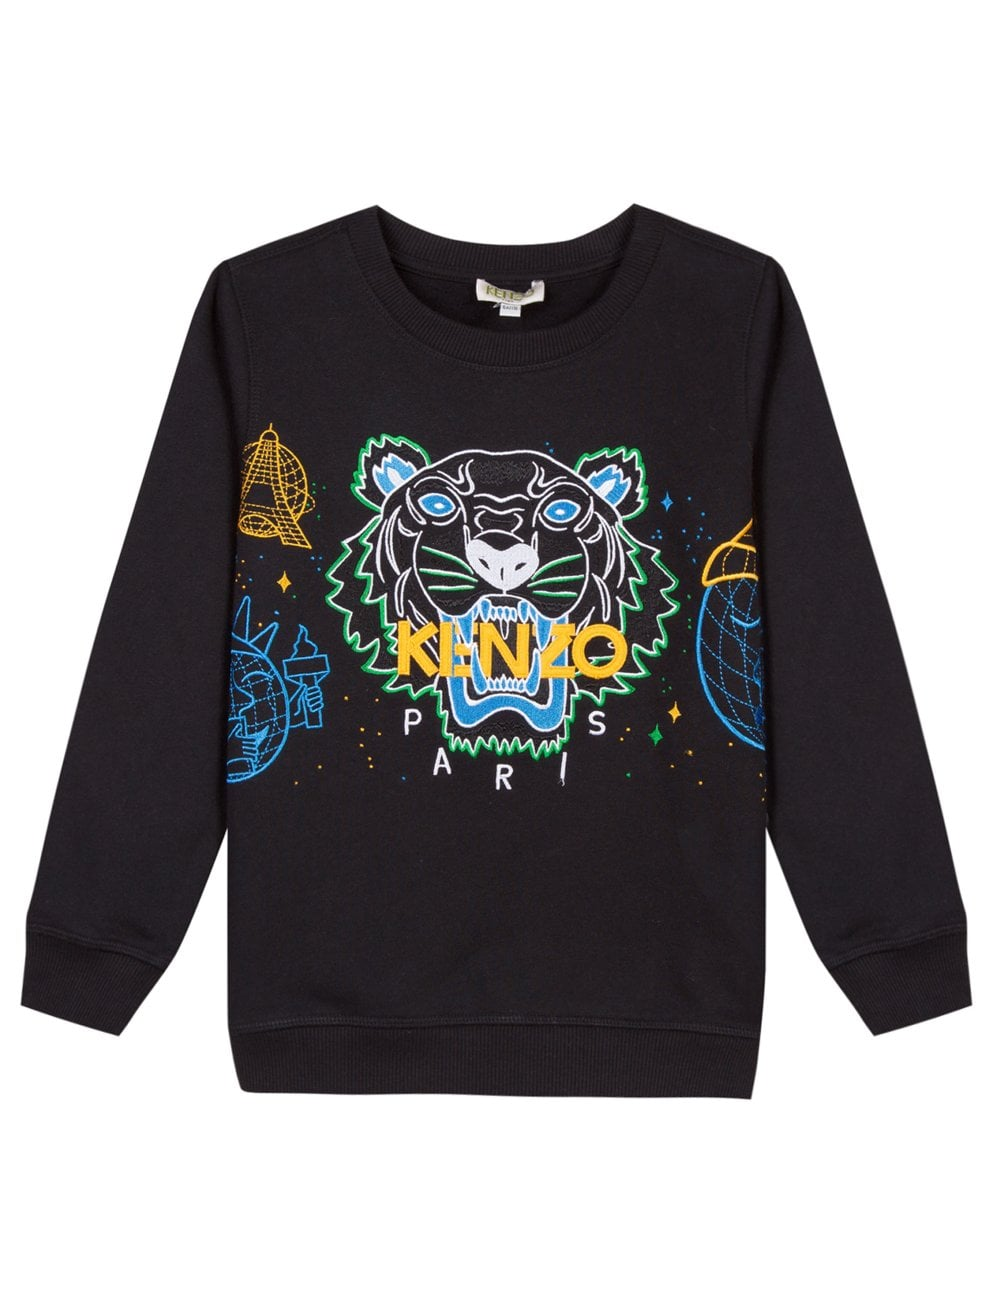 eca814fd2 Kenzo Boys Tiger JB 6 Sweat Top